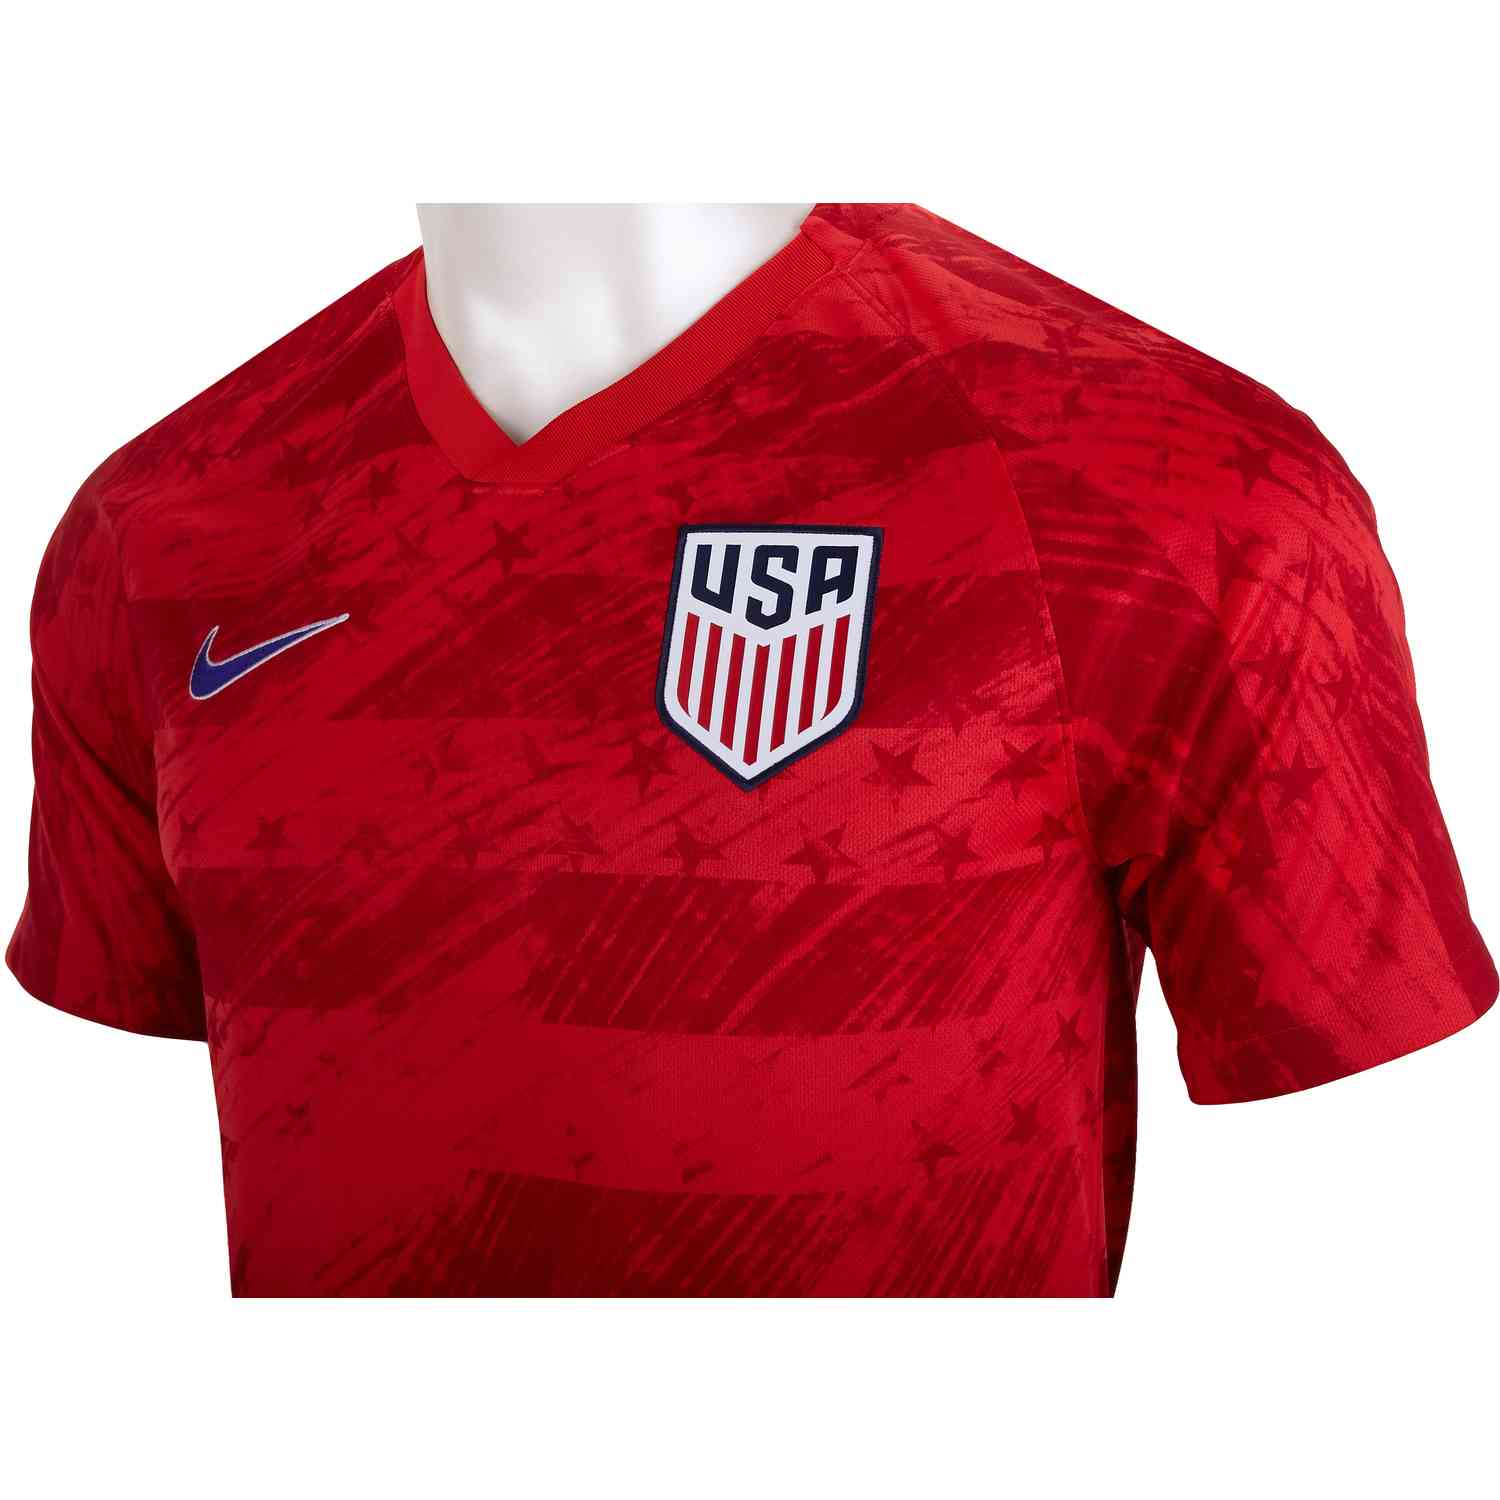 new style 27760 d91b6 2019 Christian Pulisic USMNT Away Jersey - Soccer Master